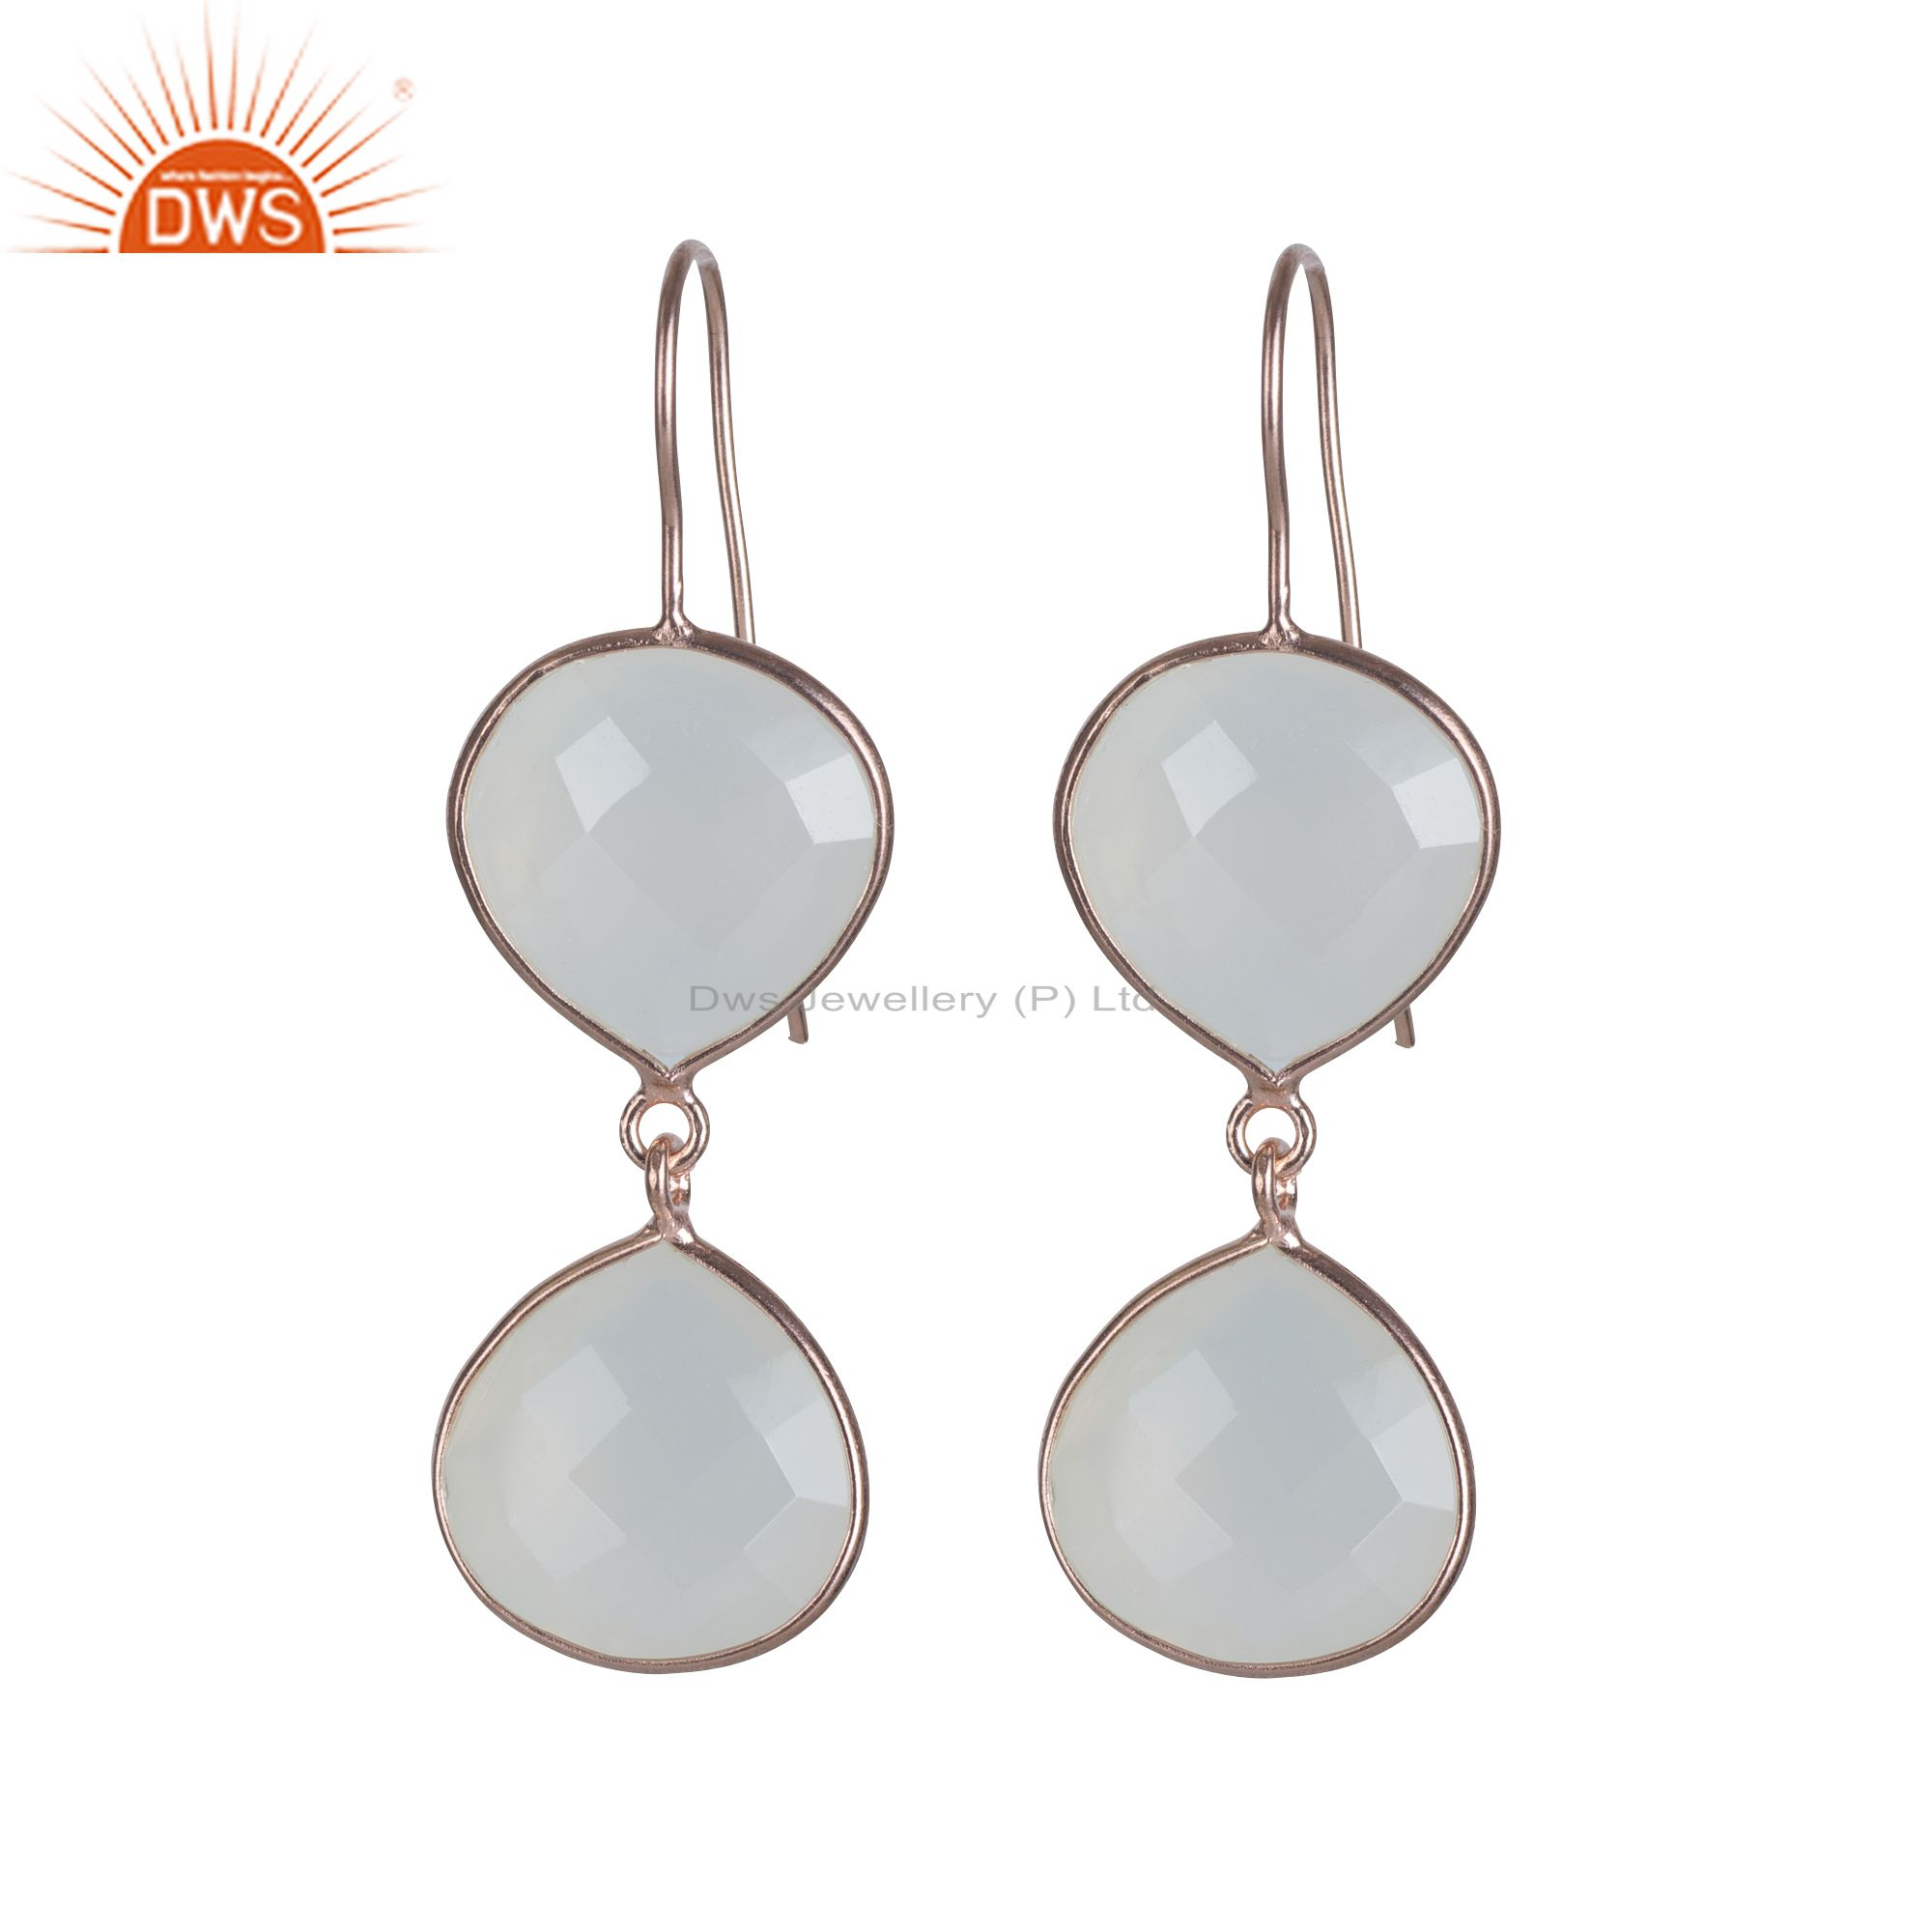 18K Rose Gold Over Sterling Silver White Moonstone Bezel Set Dangle Earrings